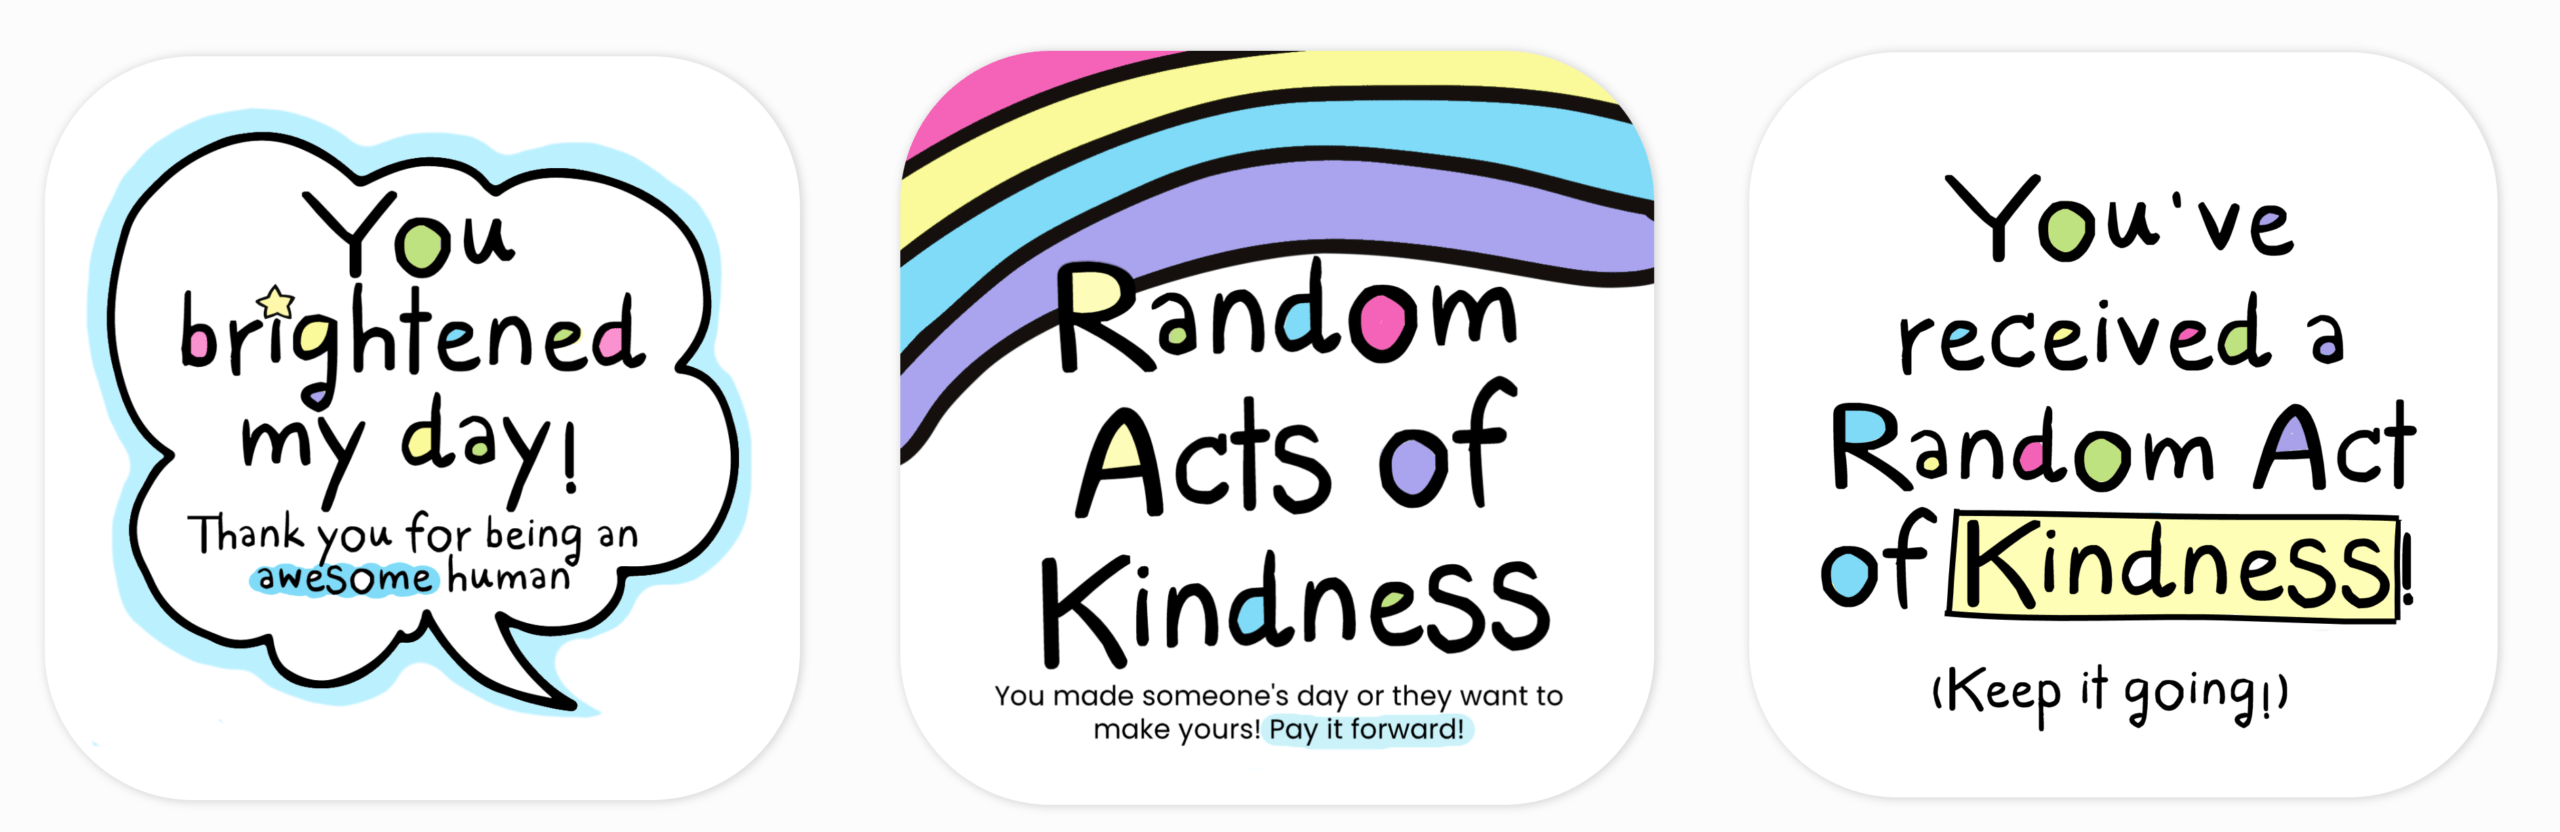 Random Acts Of Kindness Cards - Blessing Manifesting Pertaining To Random Acts Of Kindness Cards Templates